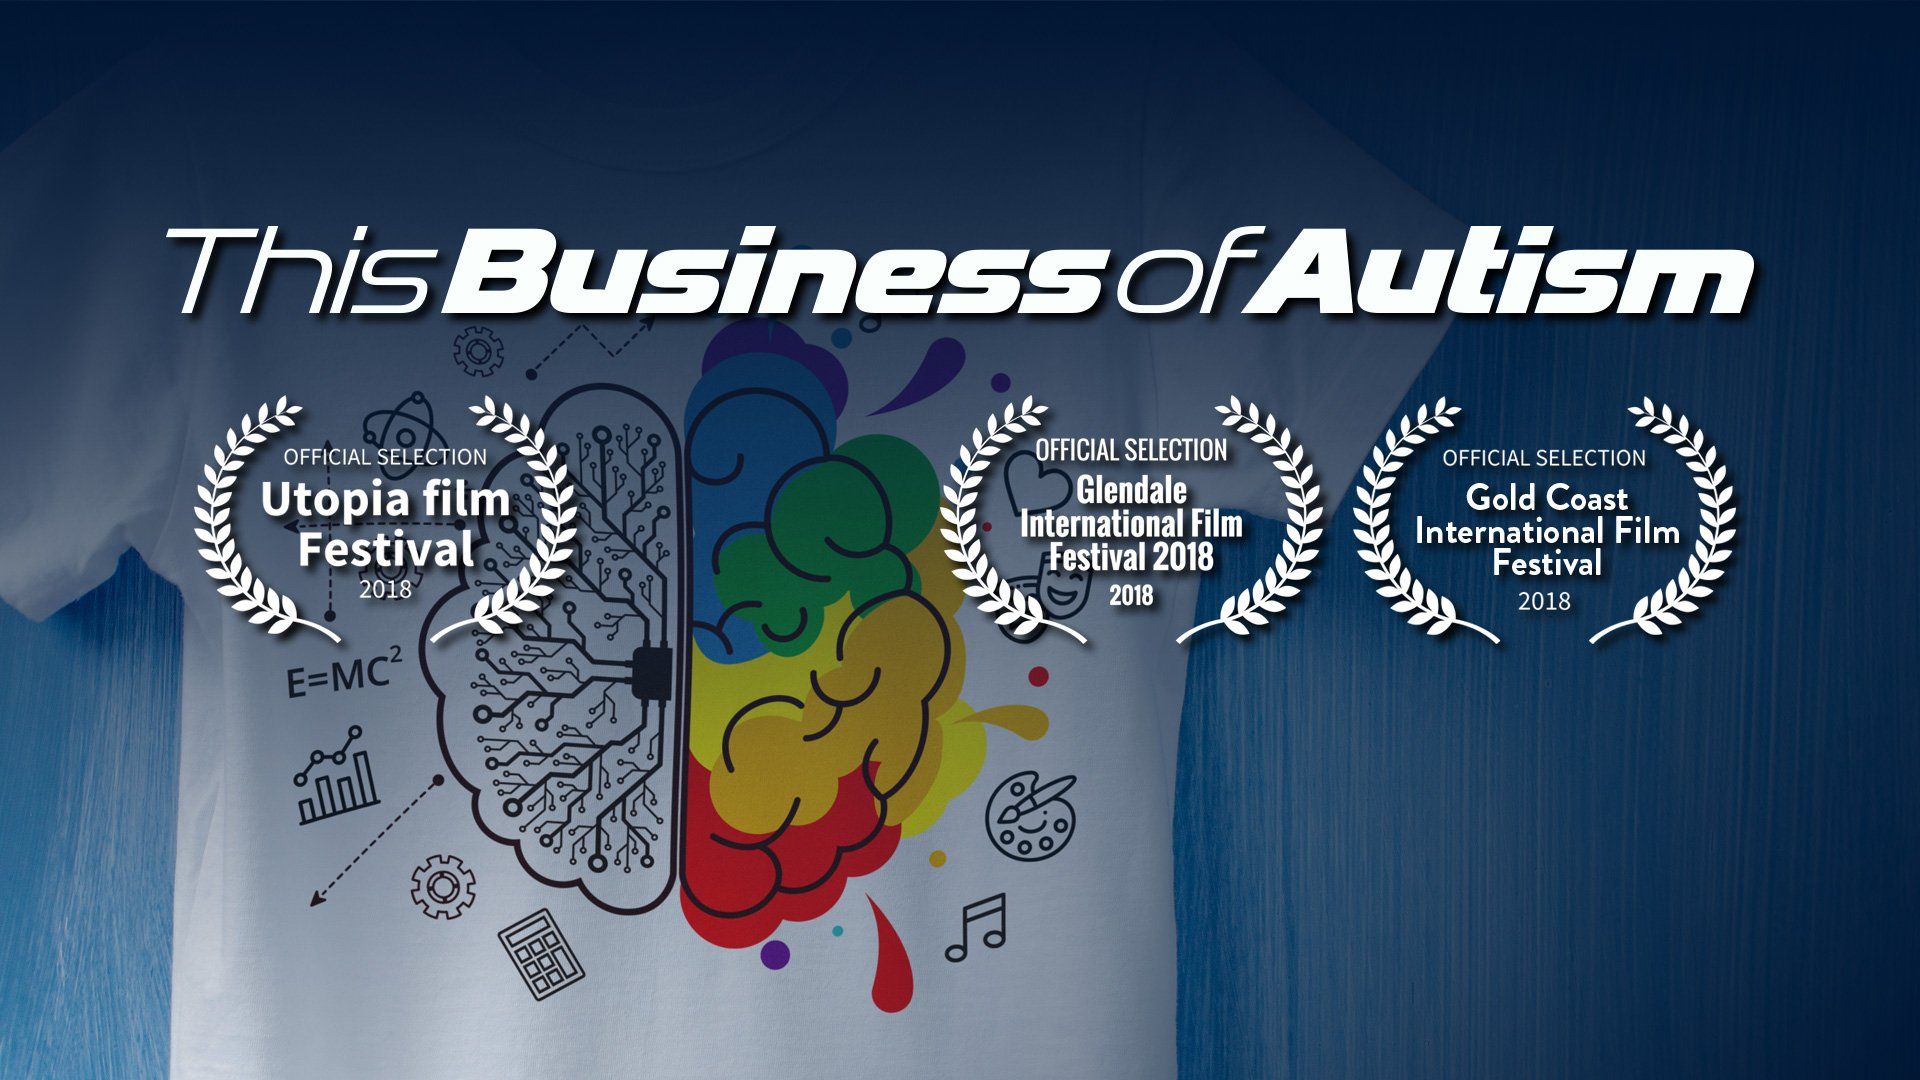 this business of autism official selection glendale international film festival 2018 utopia film festival